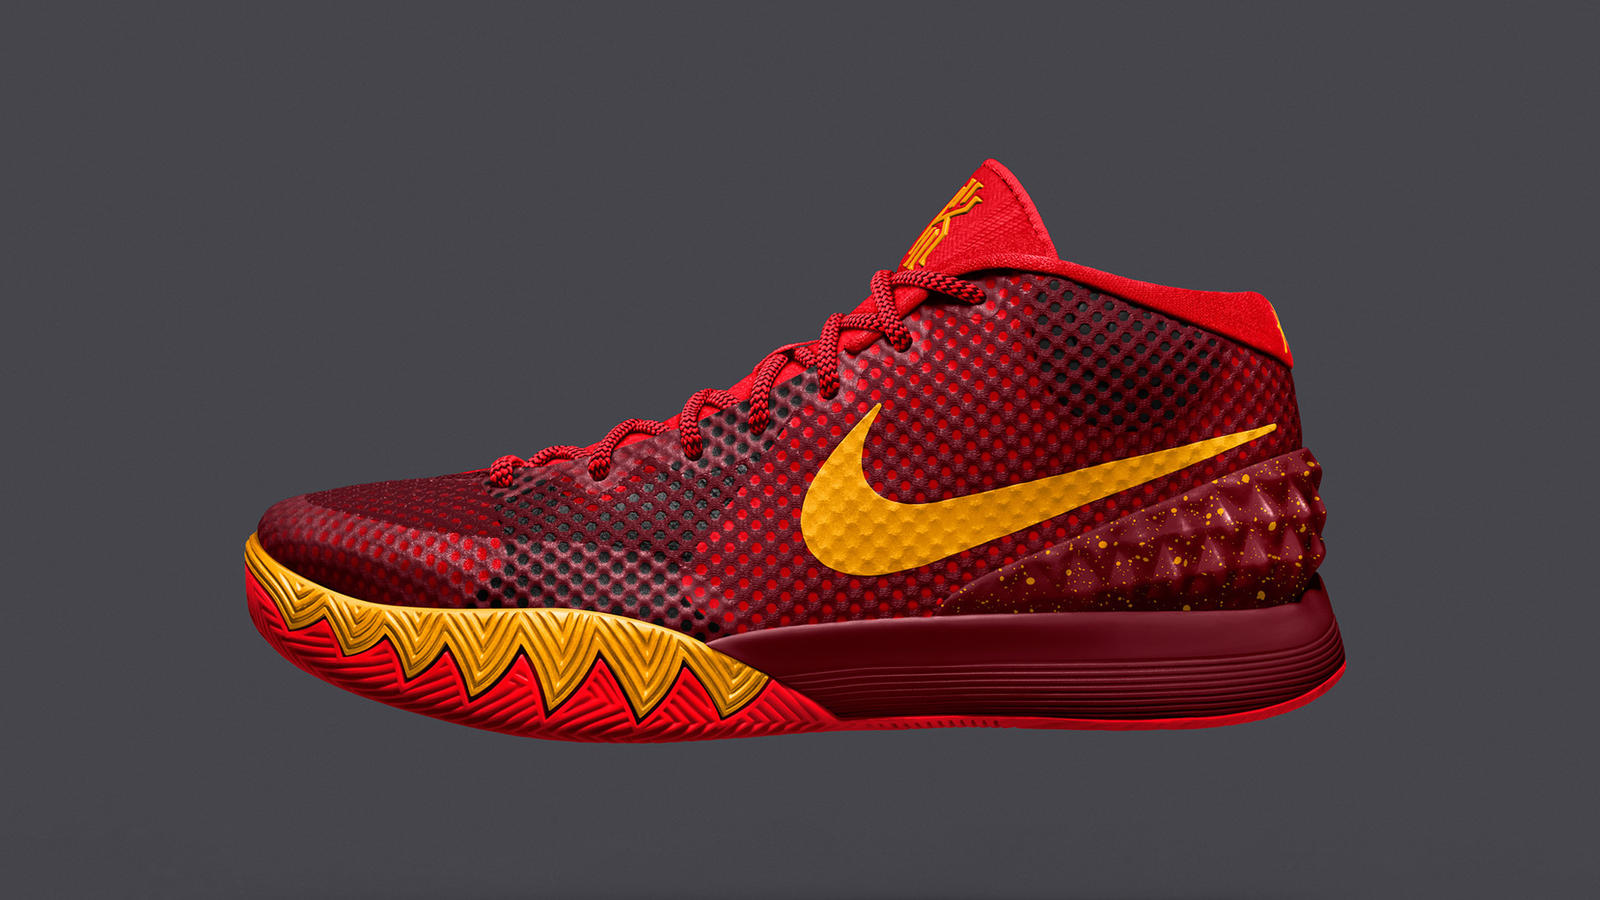 097998ca0d6c Sp15 NikeiD Kyrie 1 2058x1570 CrimsonTeamRed. KYRIE 1 NIKEiD custom  colorway being worn by Kyrie Irving in Brooklyn.  Sp15 NikeiD Kyrie 1 2058x1570 BlackVolt